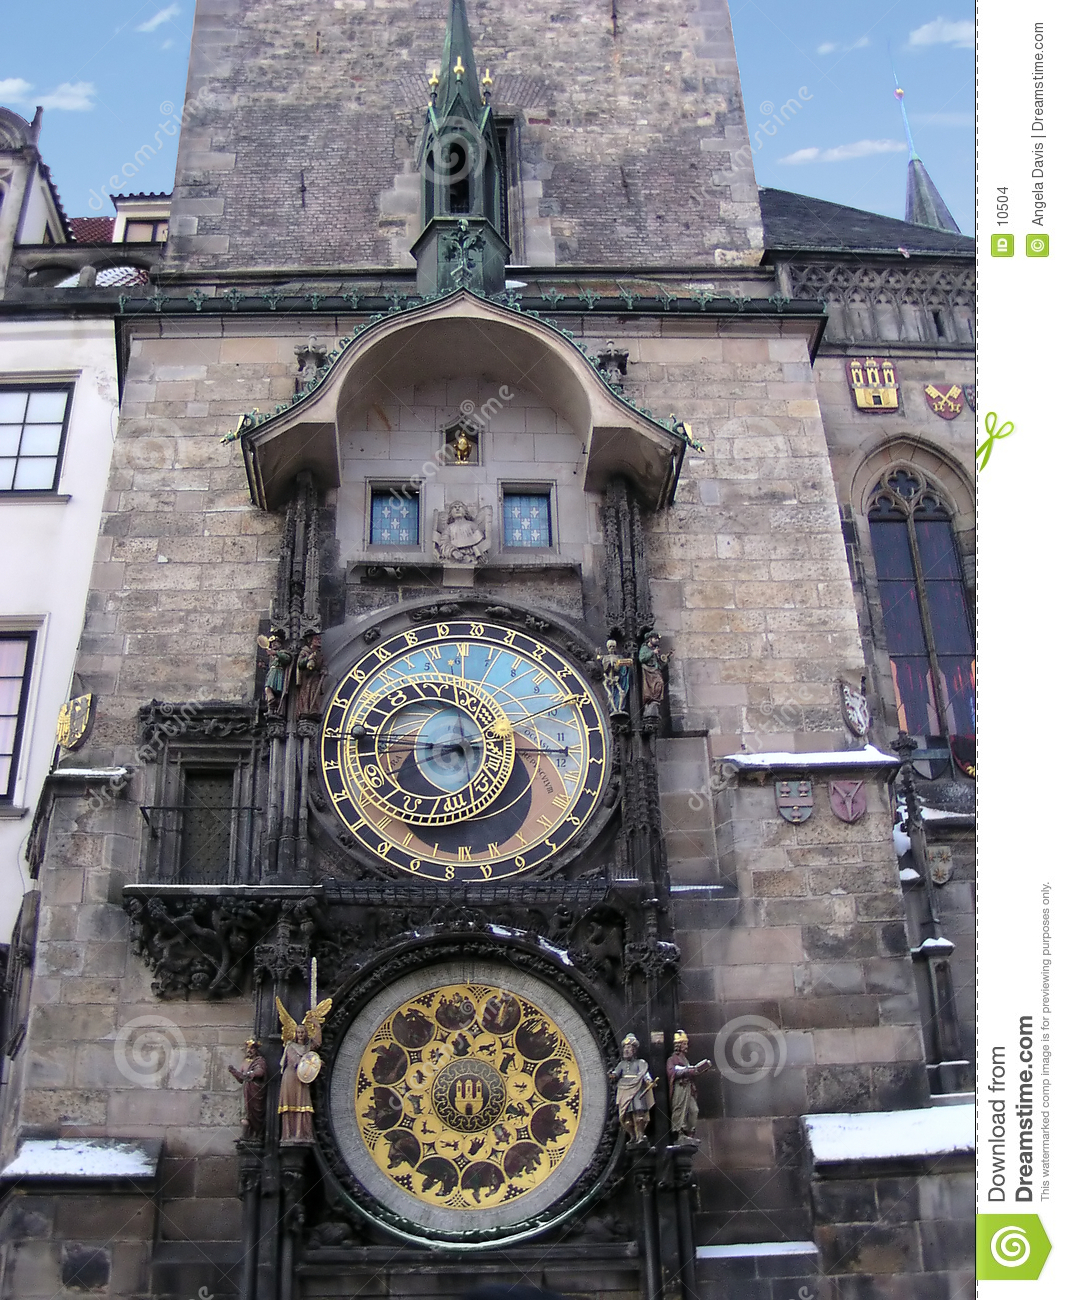 Horloge astronomique, Prague (République de Chech)